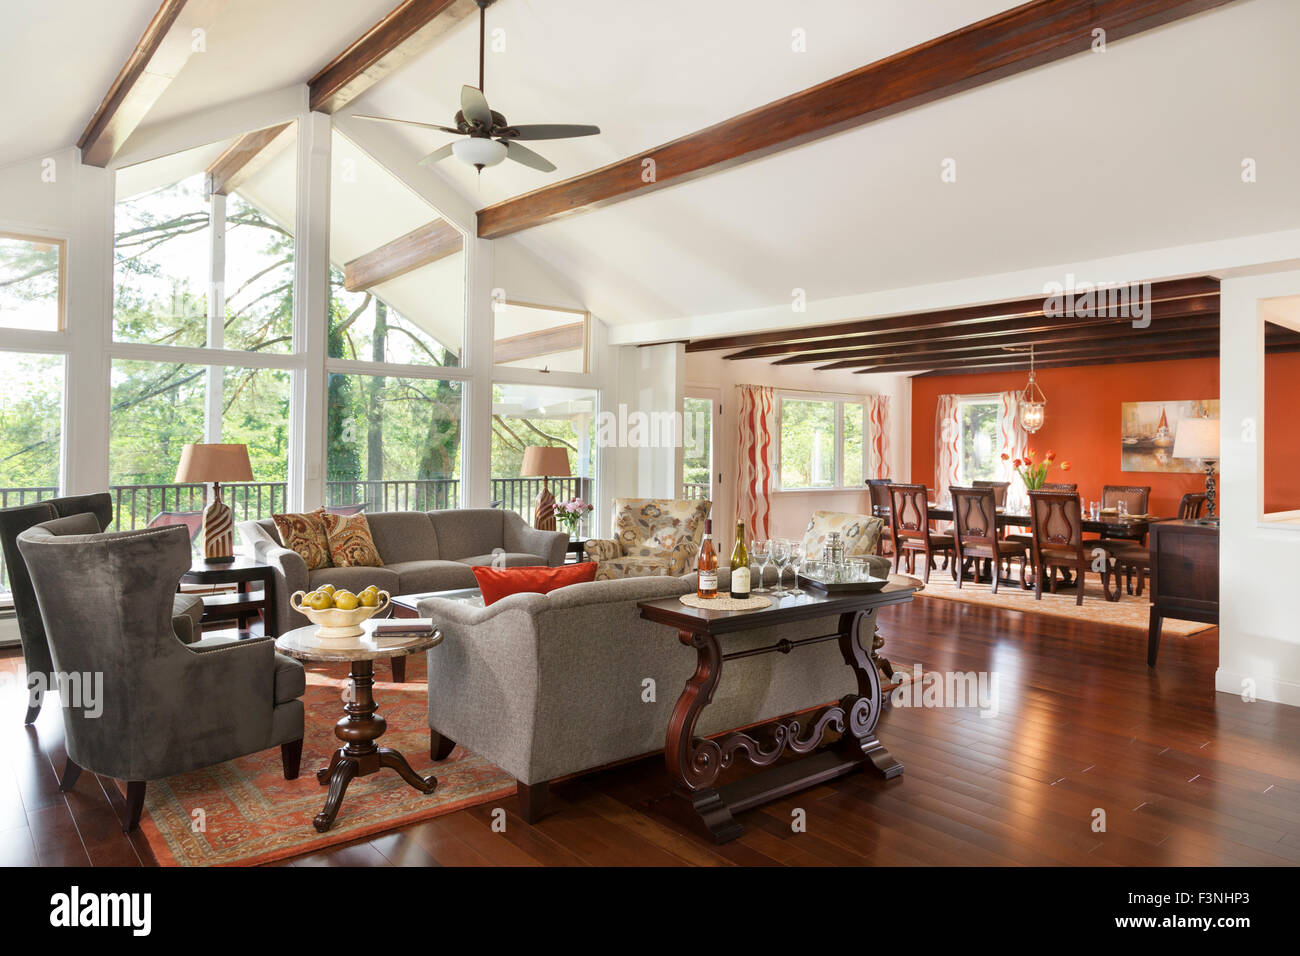 Living room and dining room with high ceiling